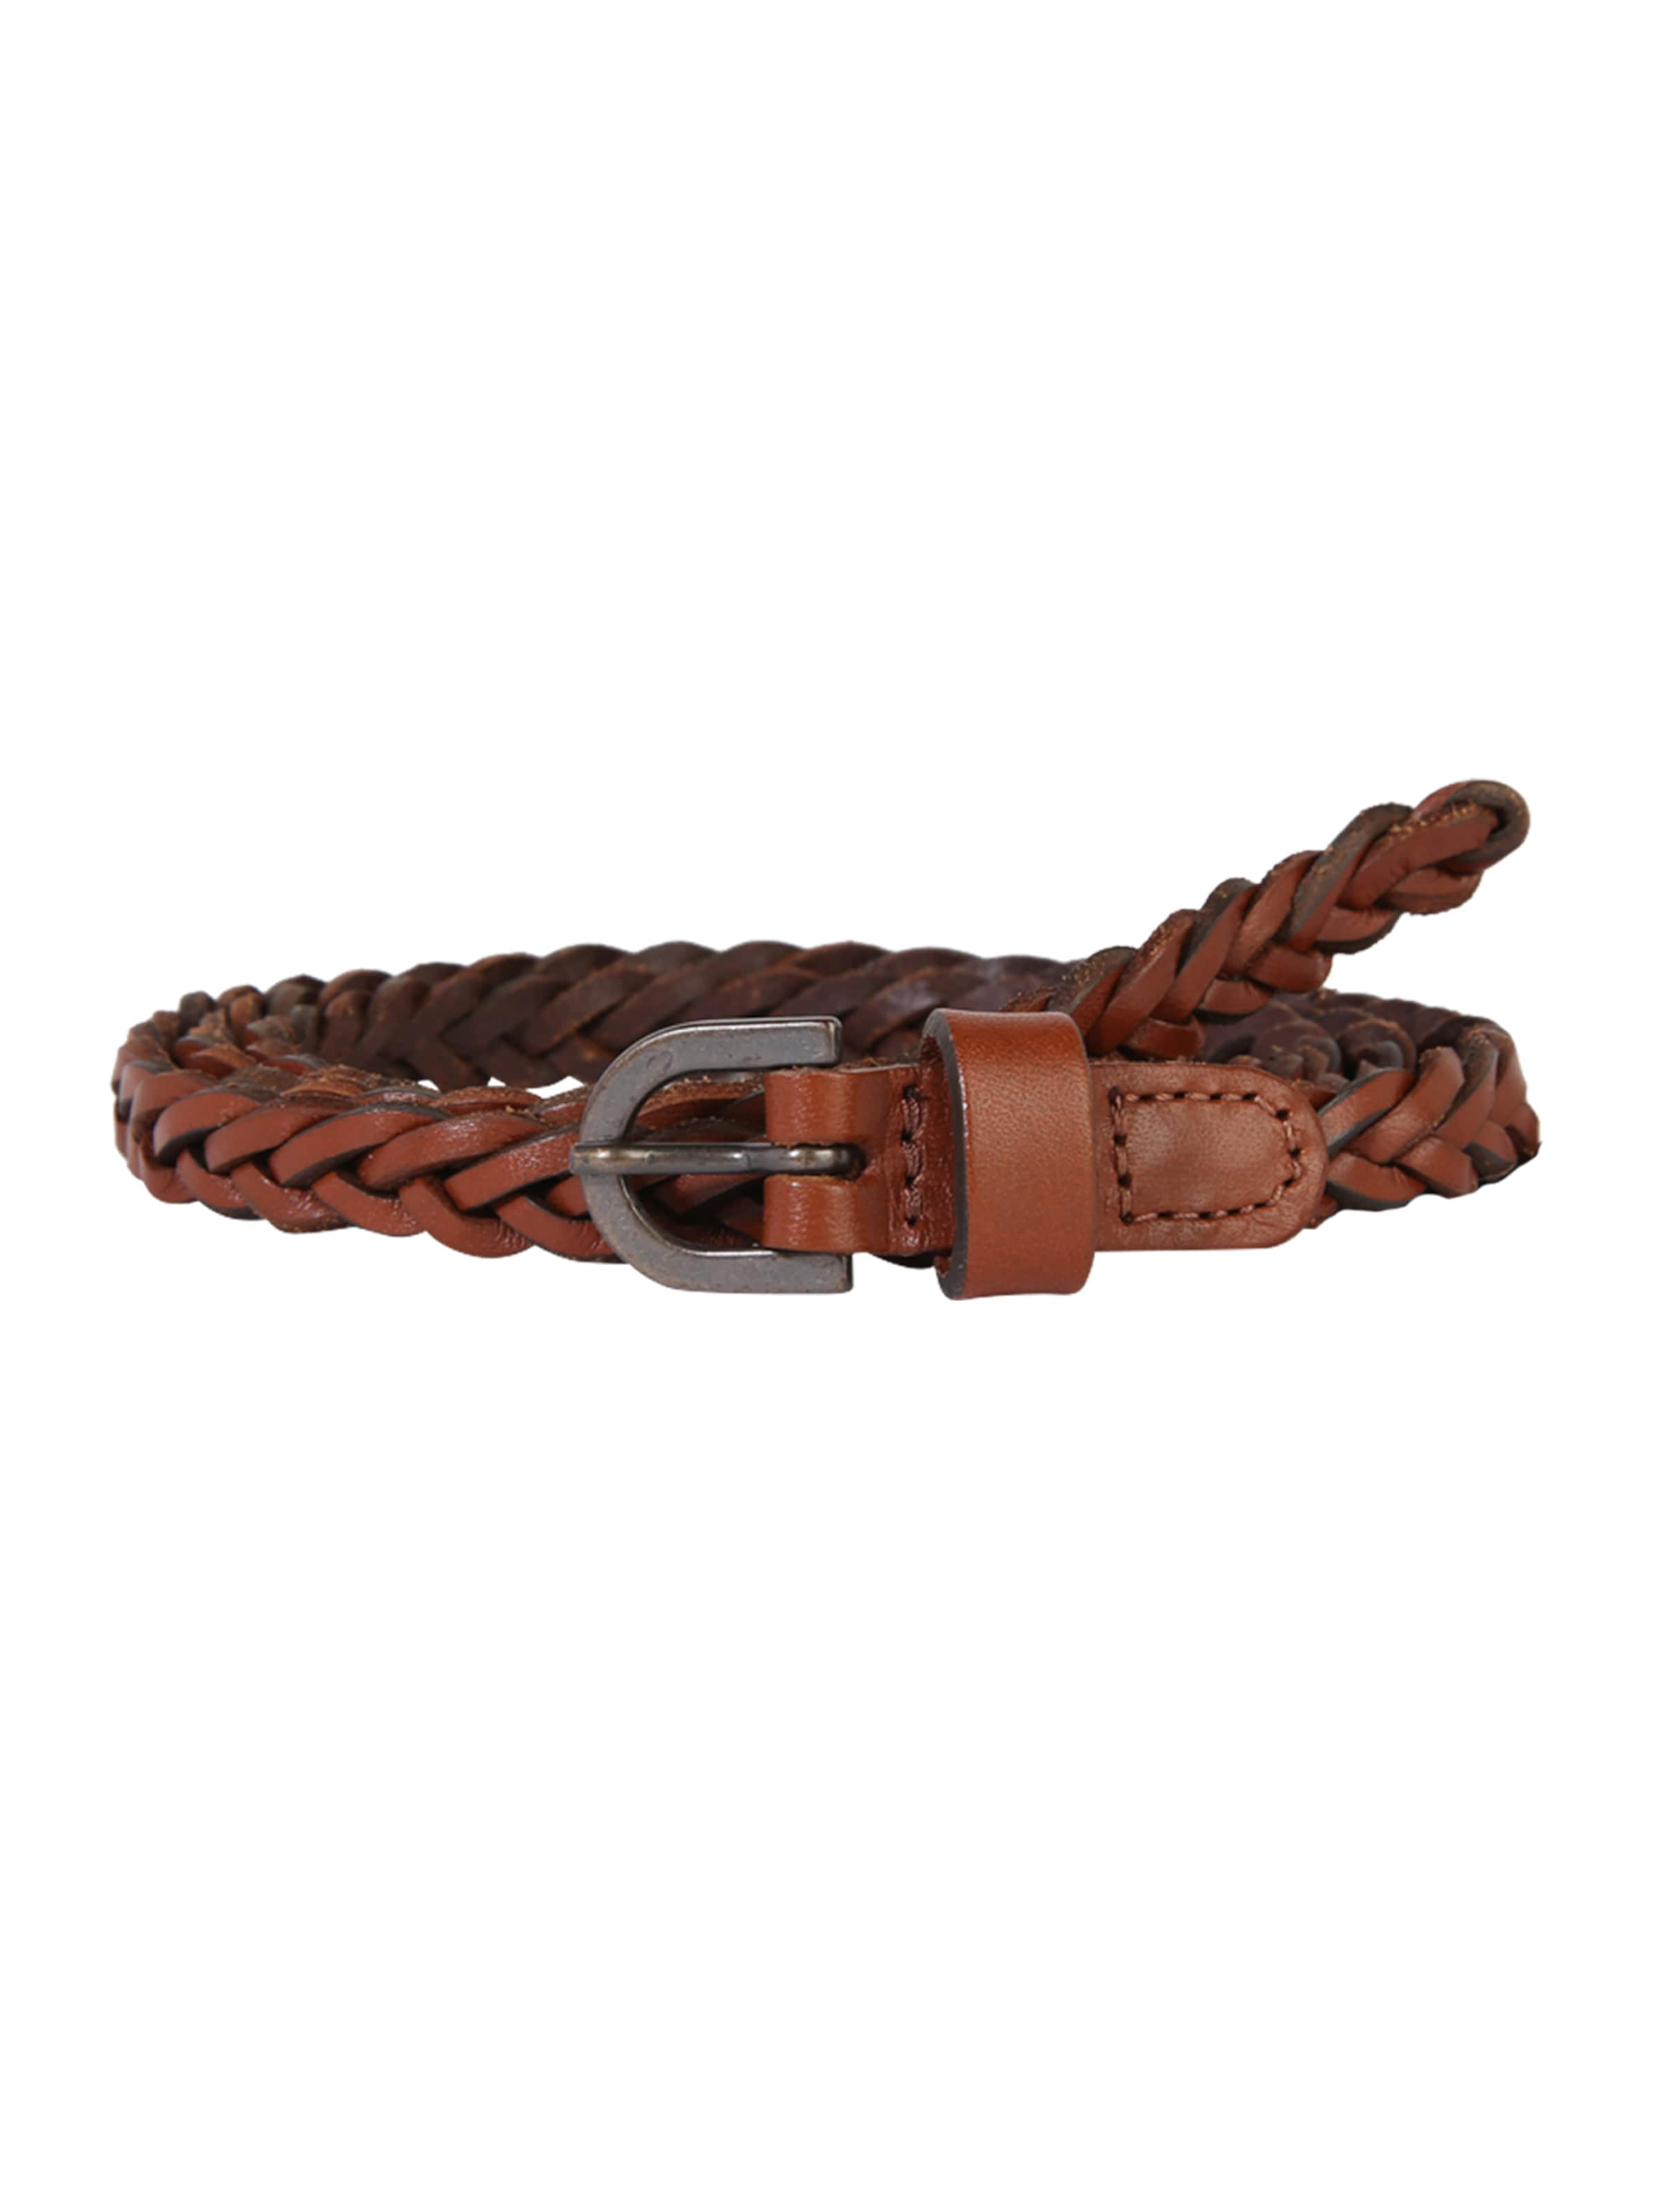 Noos' Ceinture Waist Belt En Cognac Pieces 'pcalima Leather gybf76